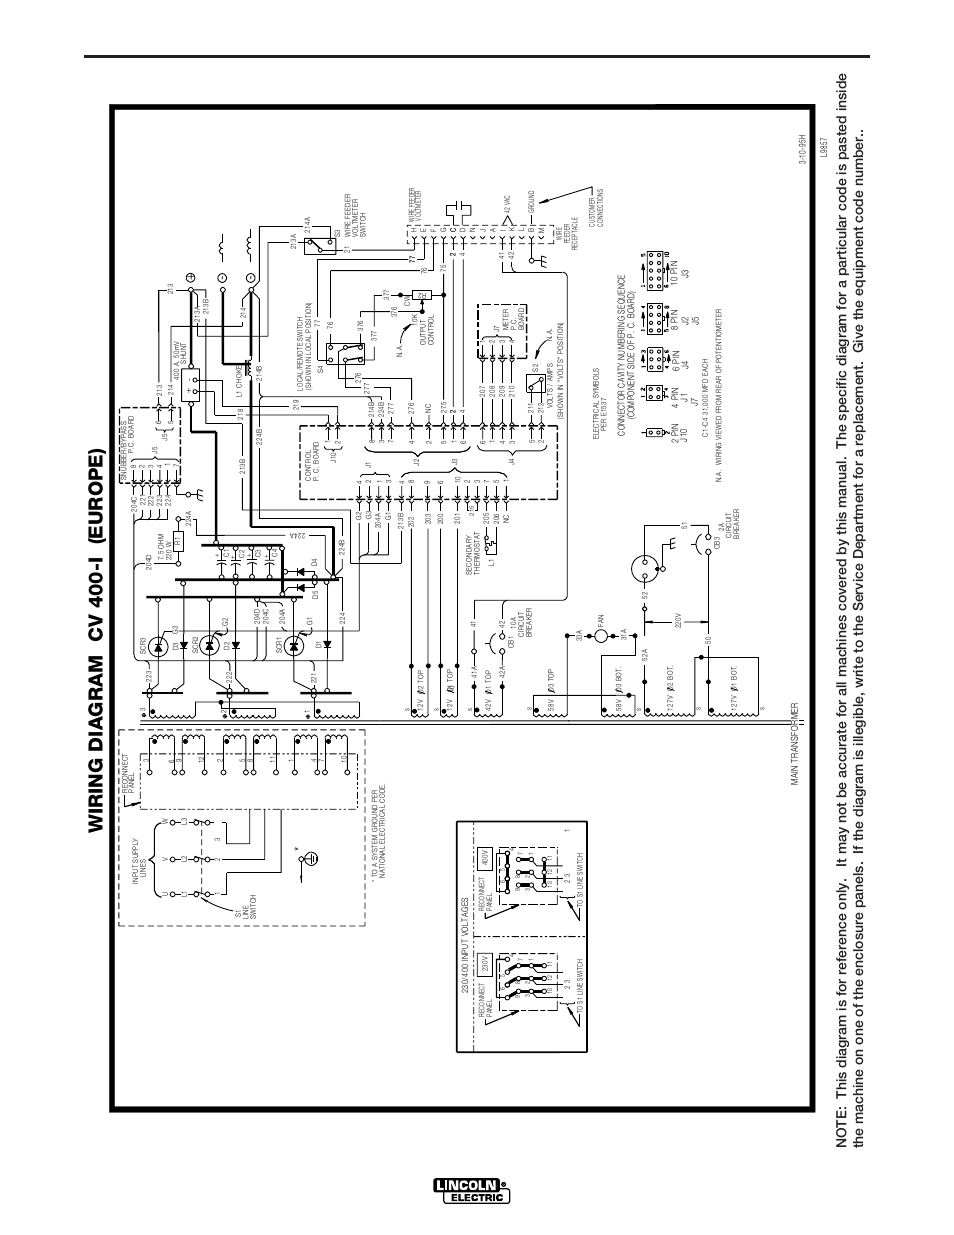 lincoln 7 pin wiring diagram john deere 7 pin wiring diagram